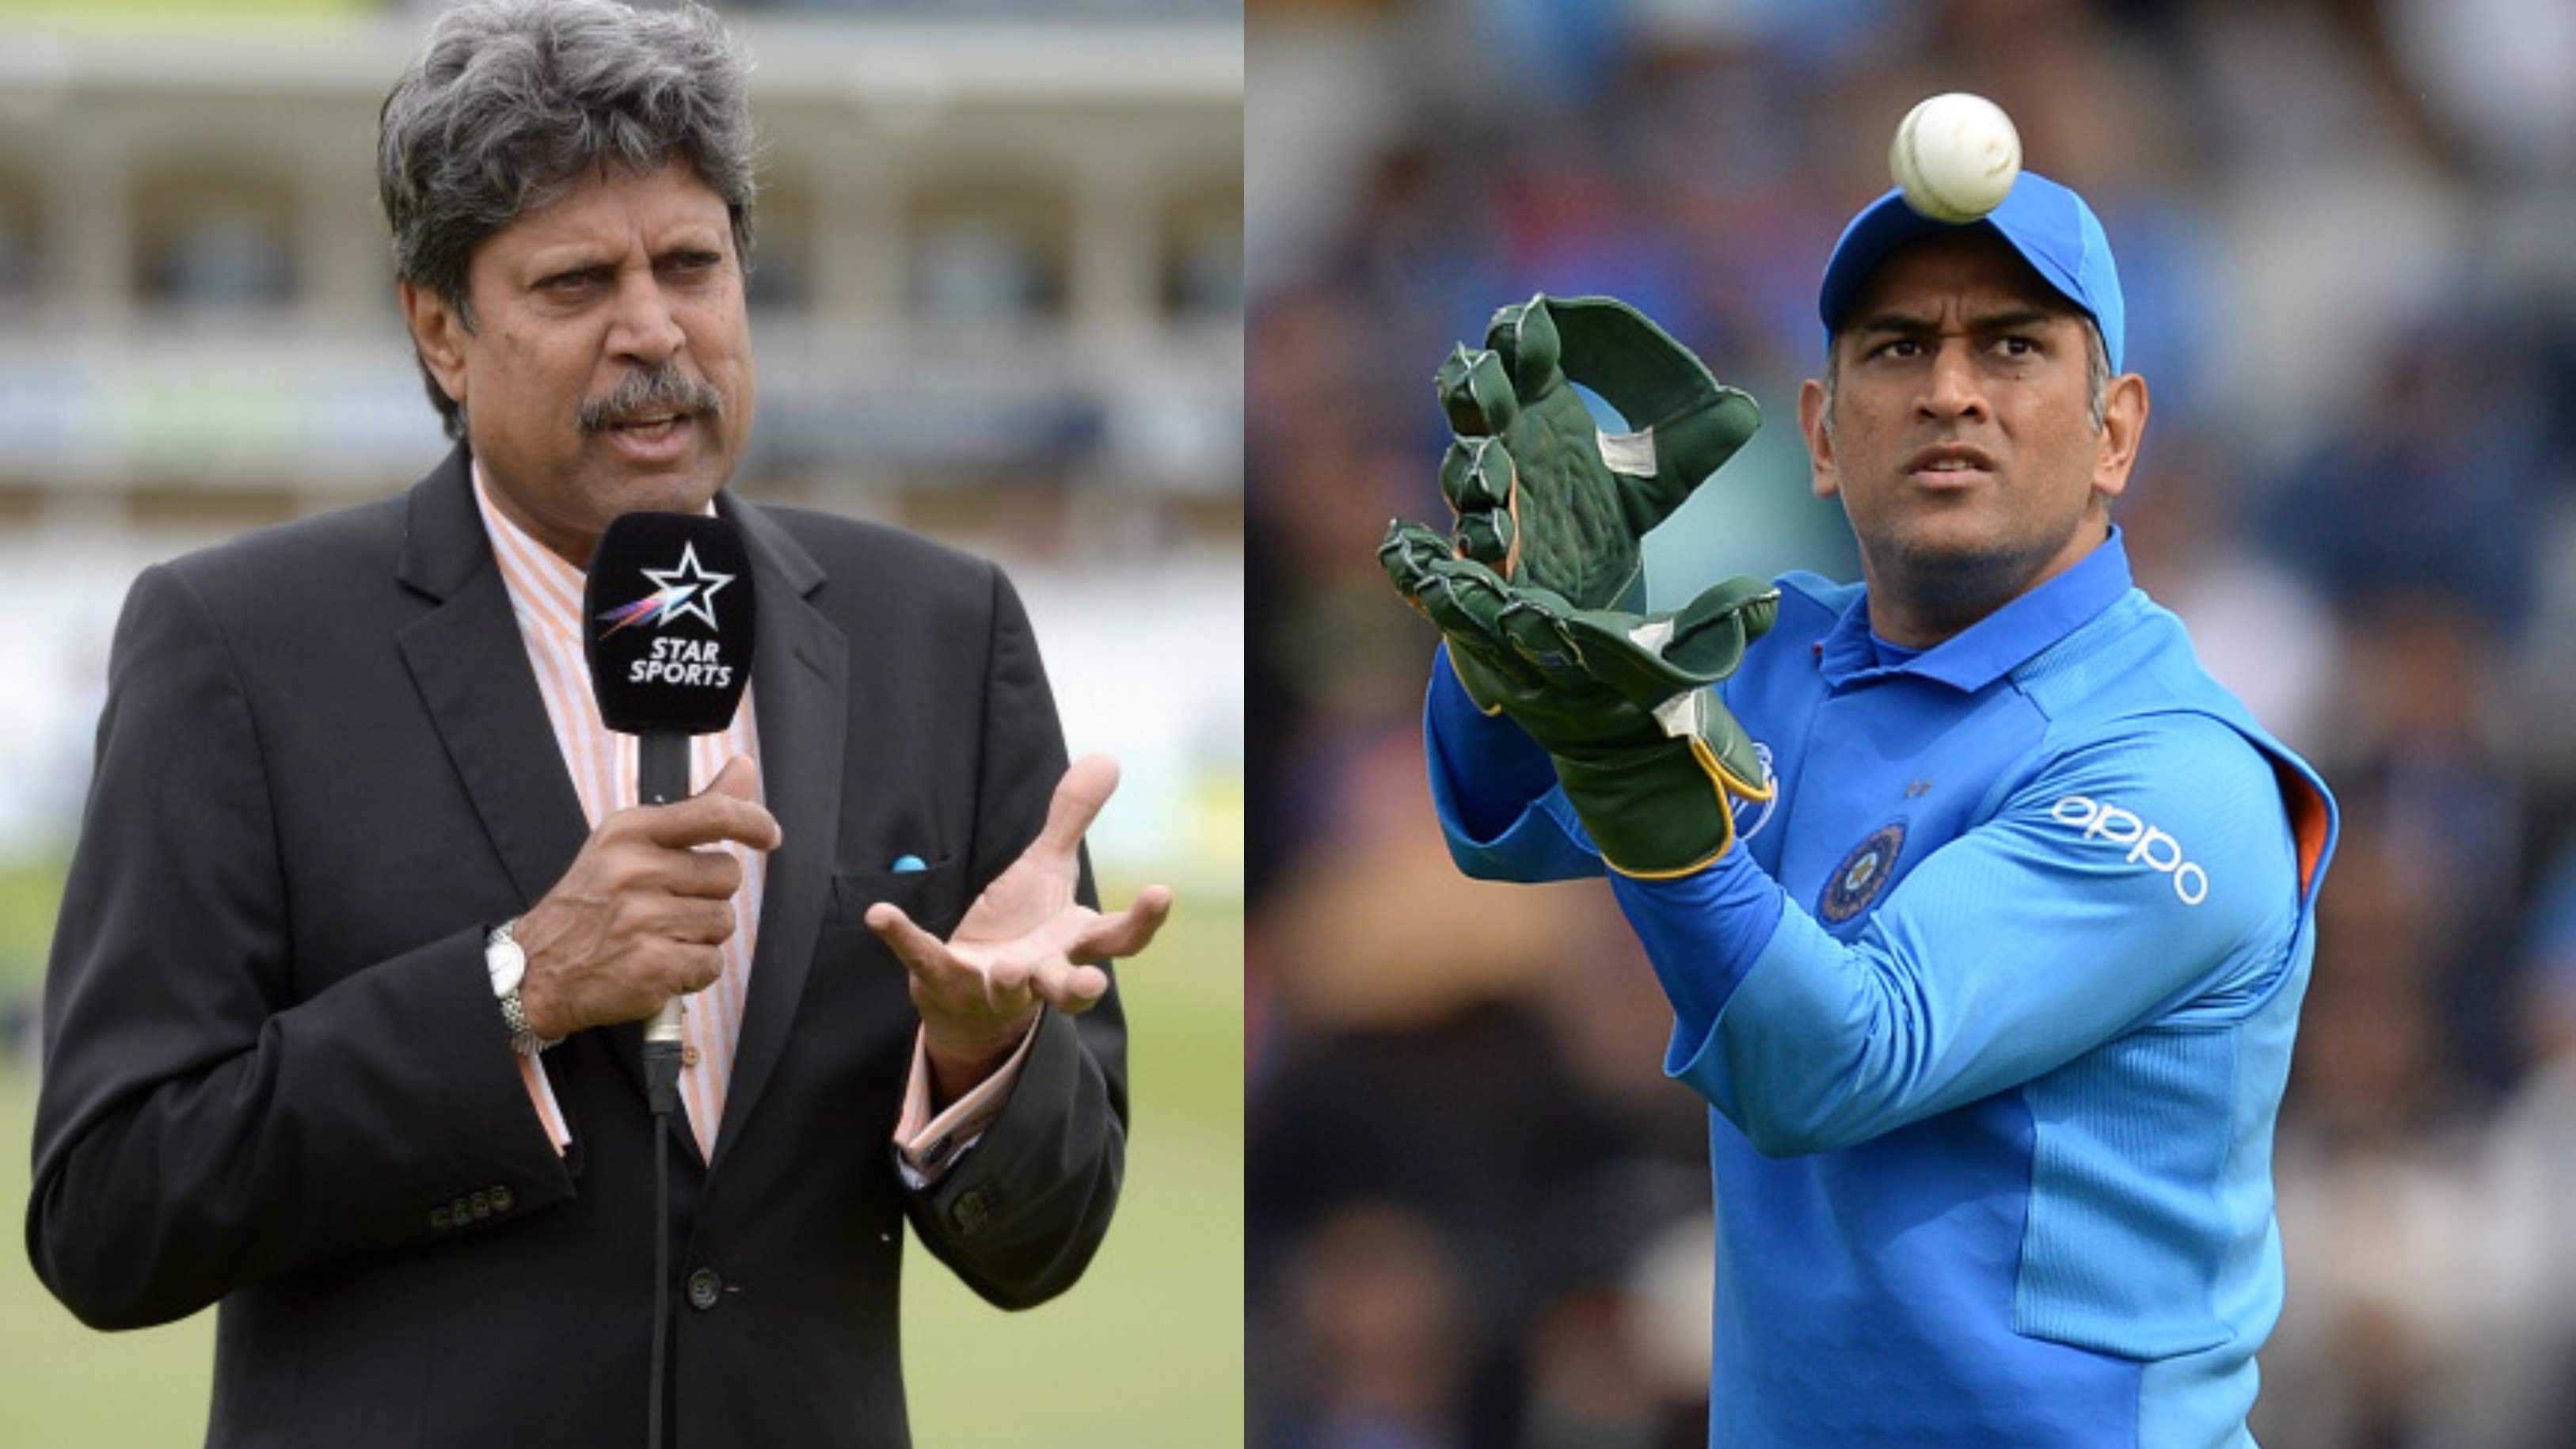 CWC 2019: Unfair to criticize MS Dhoni, says Kapil Dev on his World Cup struggles